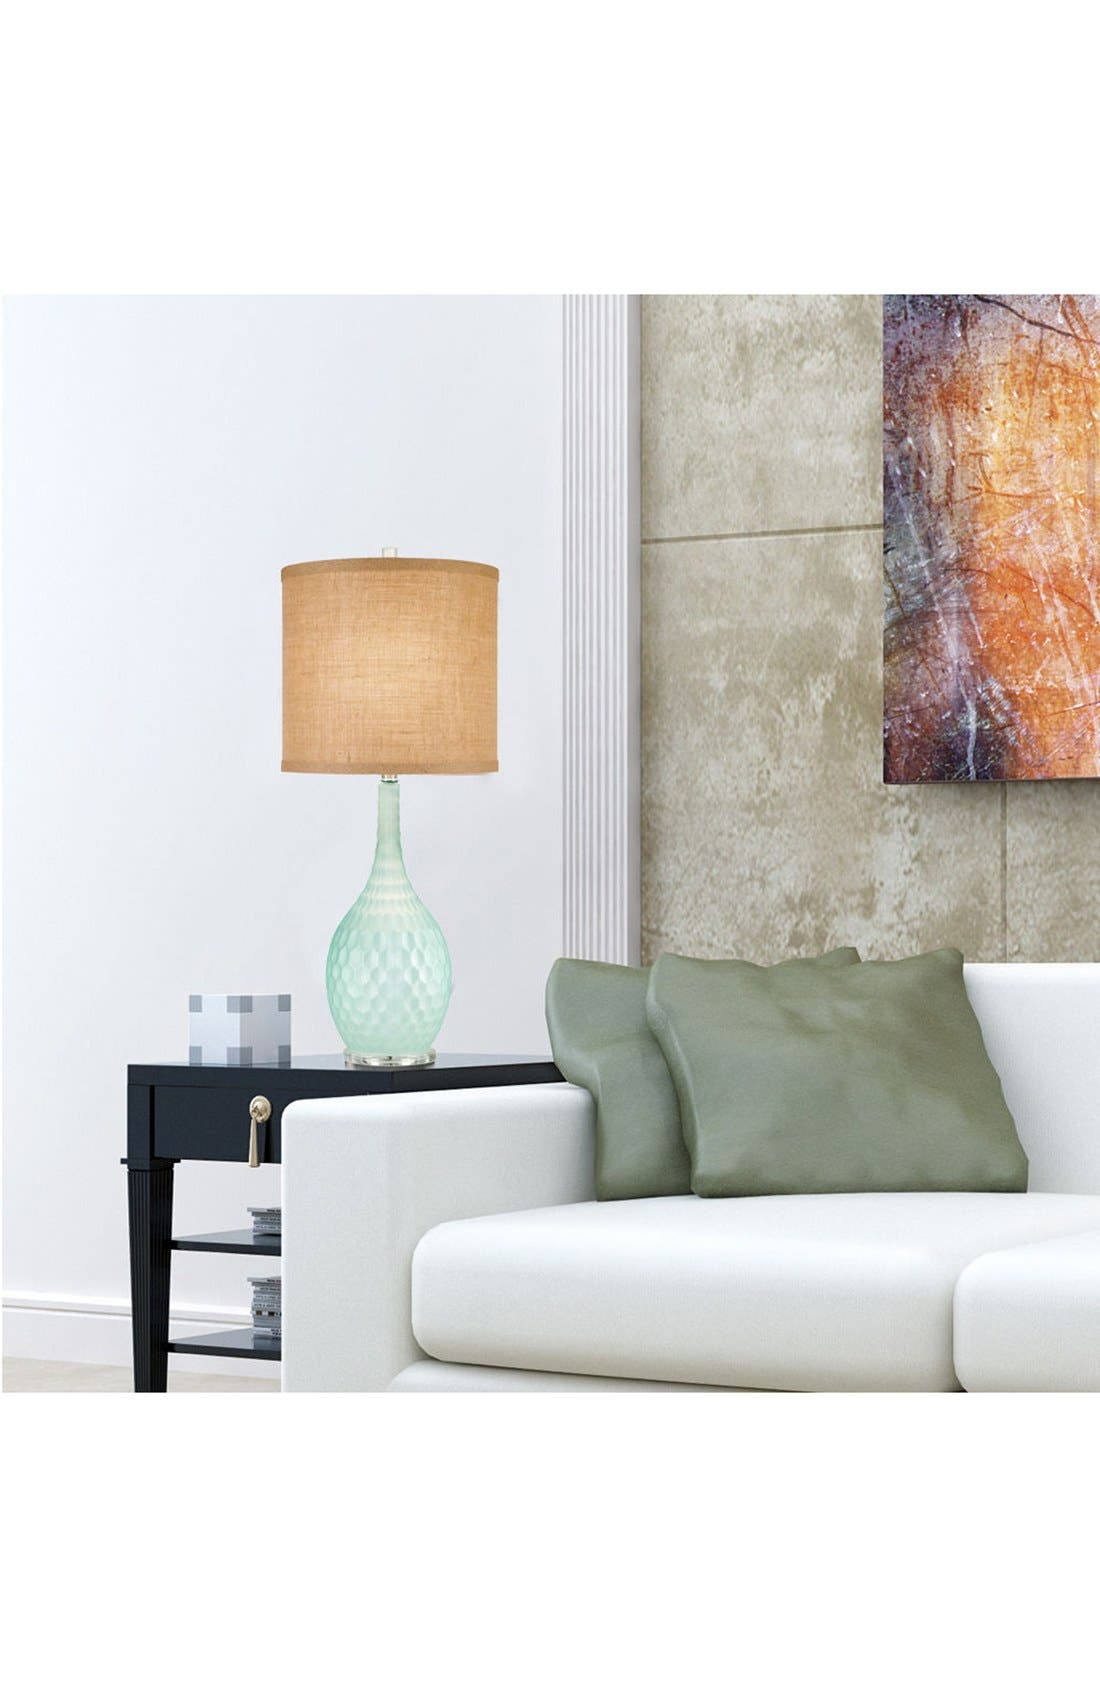 JAlexander 'Seafoam' Glass Table Lamp,                             Alternate thumbnail 2, color,                             400